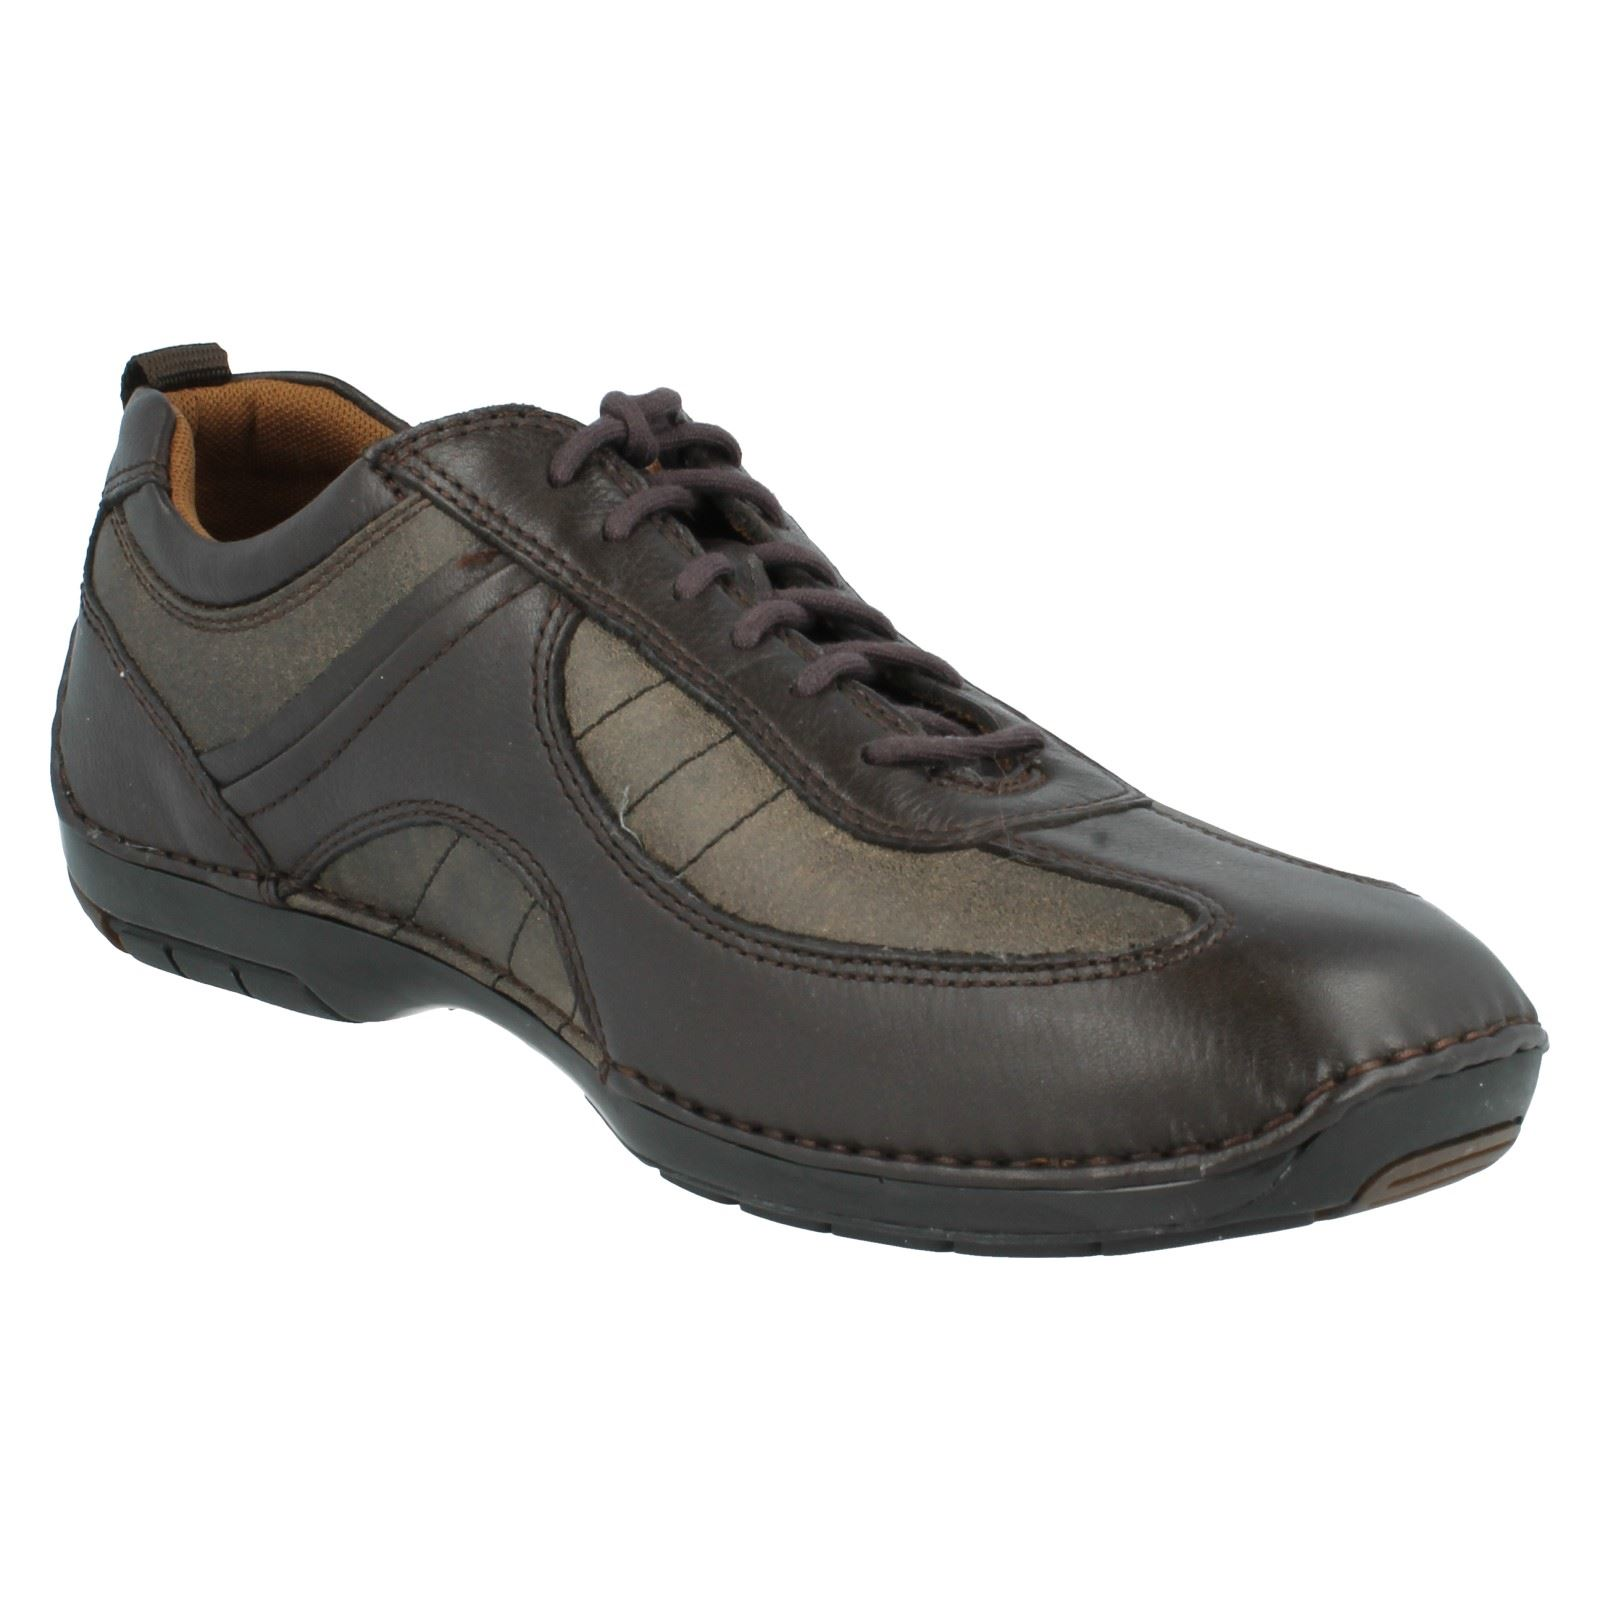 mens rockport casual shoes style westshire apm27386 ebay